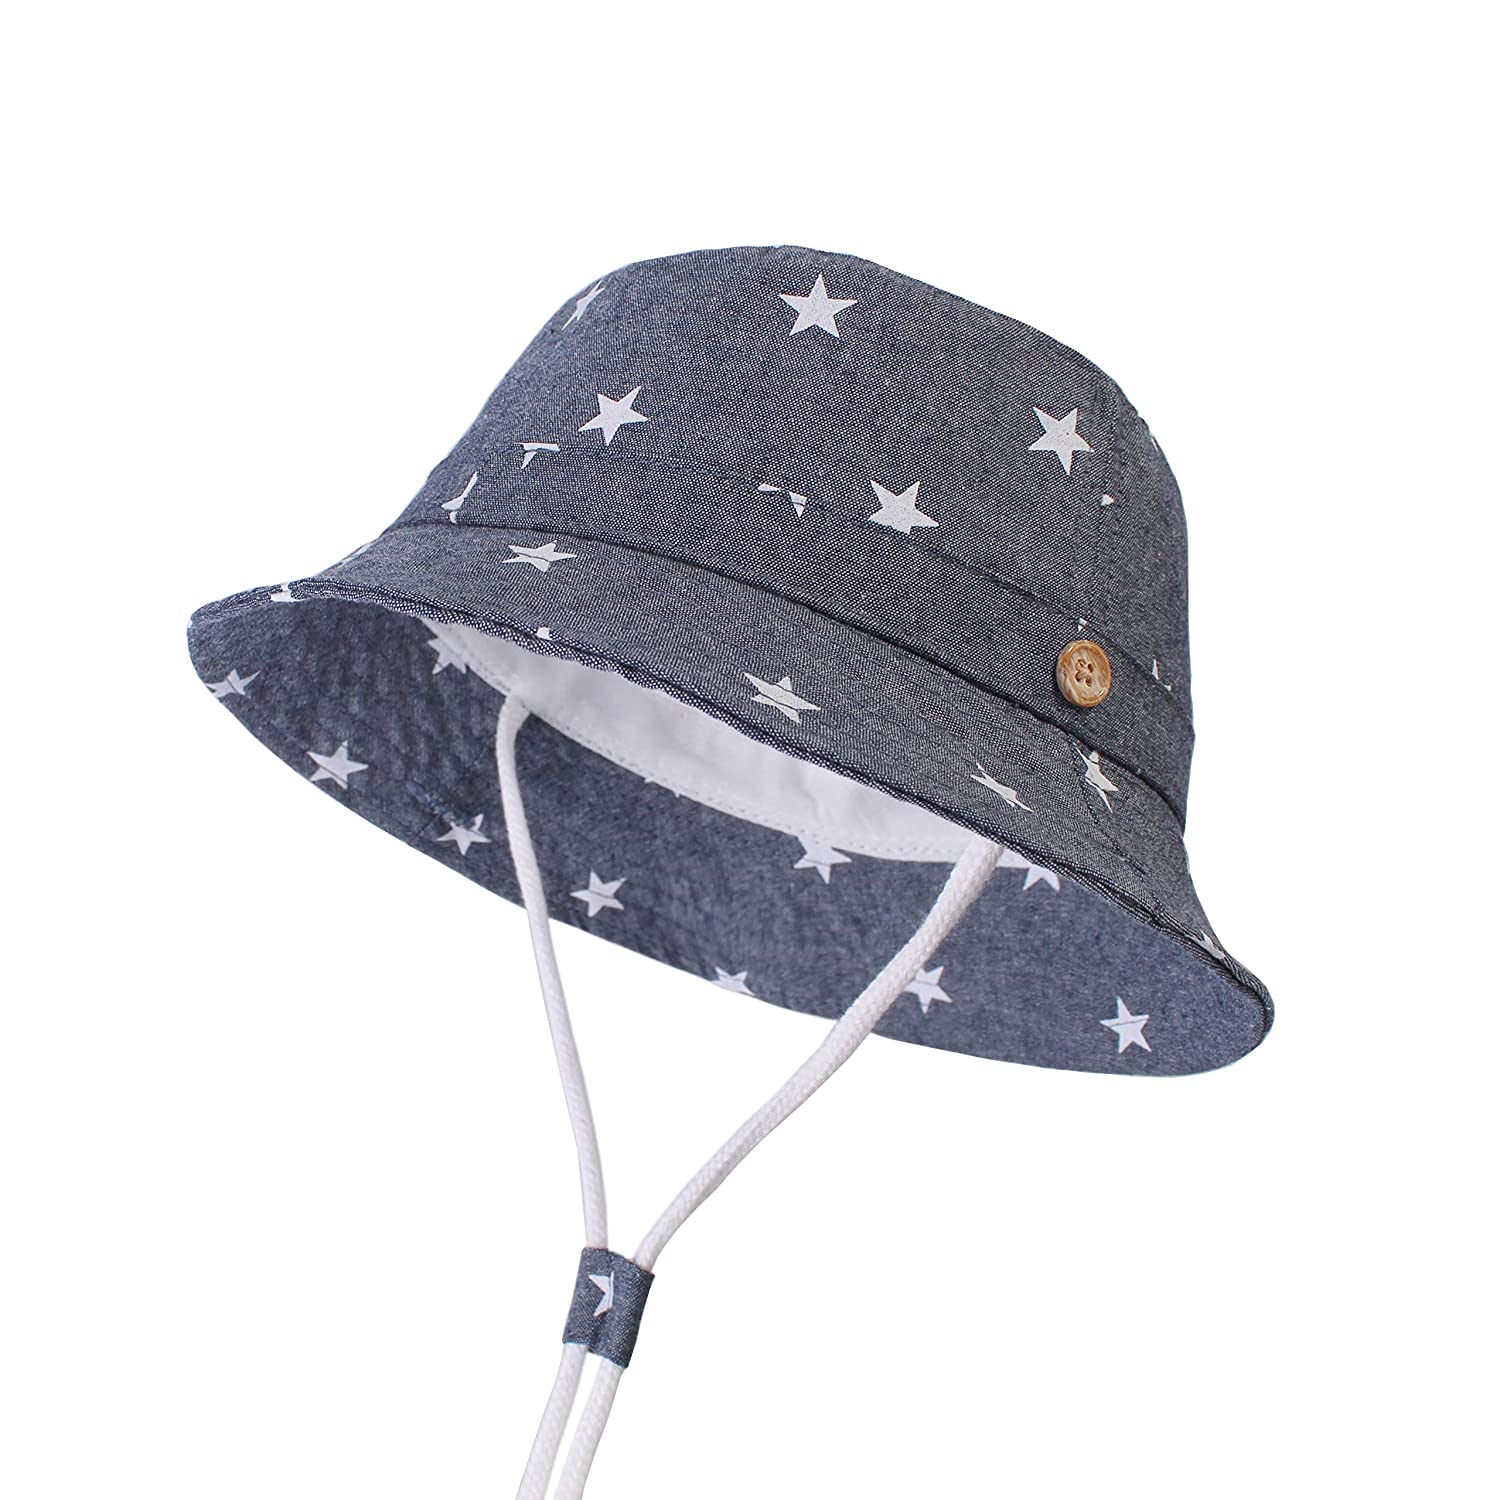 acf089910df Amazon.com  Sun Protection Hat for Kids Toddler Boys Girls Wide Brim Summer  Play Hat Cotton Baby Bucket Hat with Chin Strap  Clothing